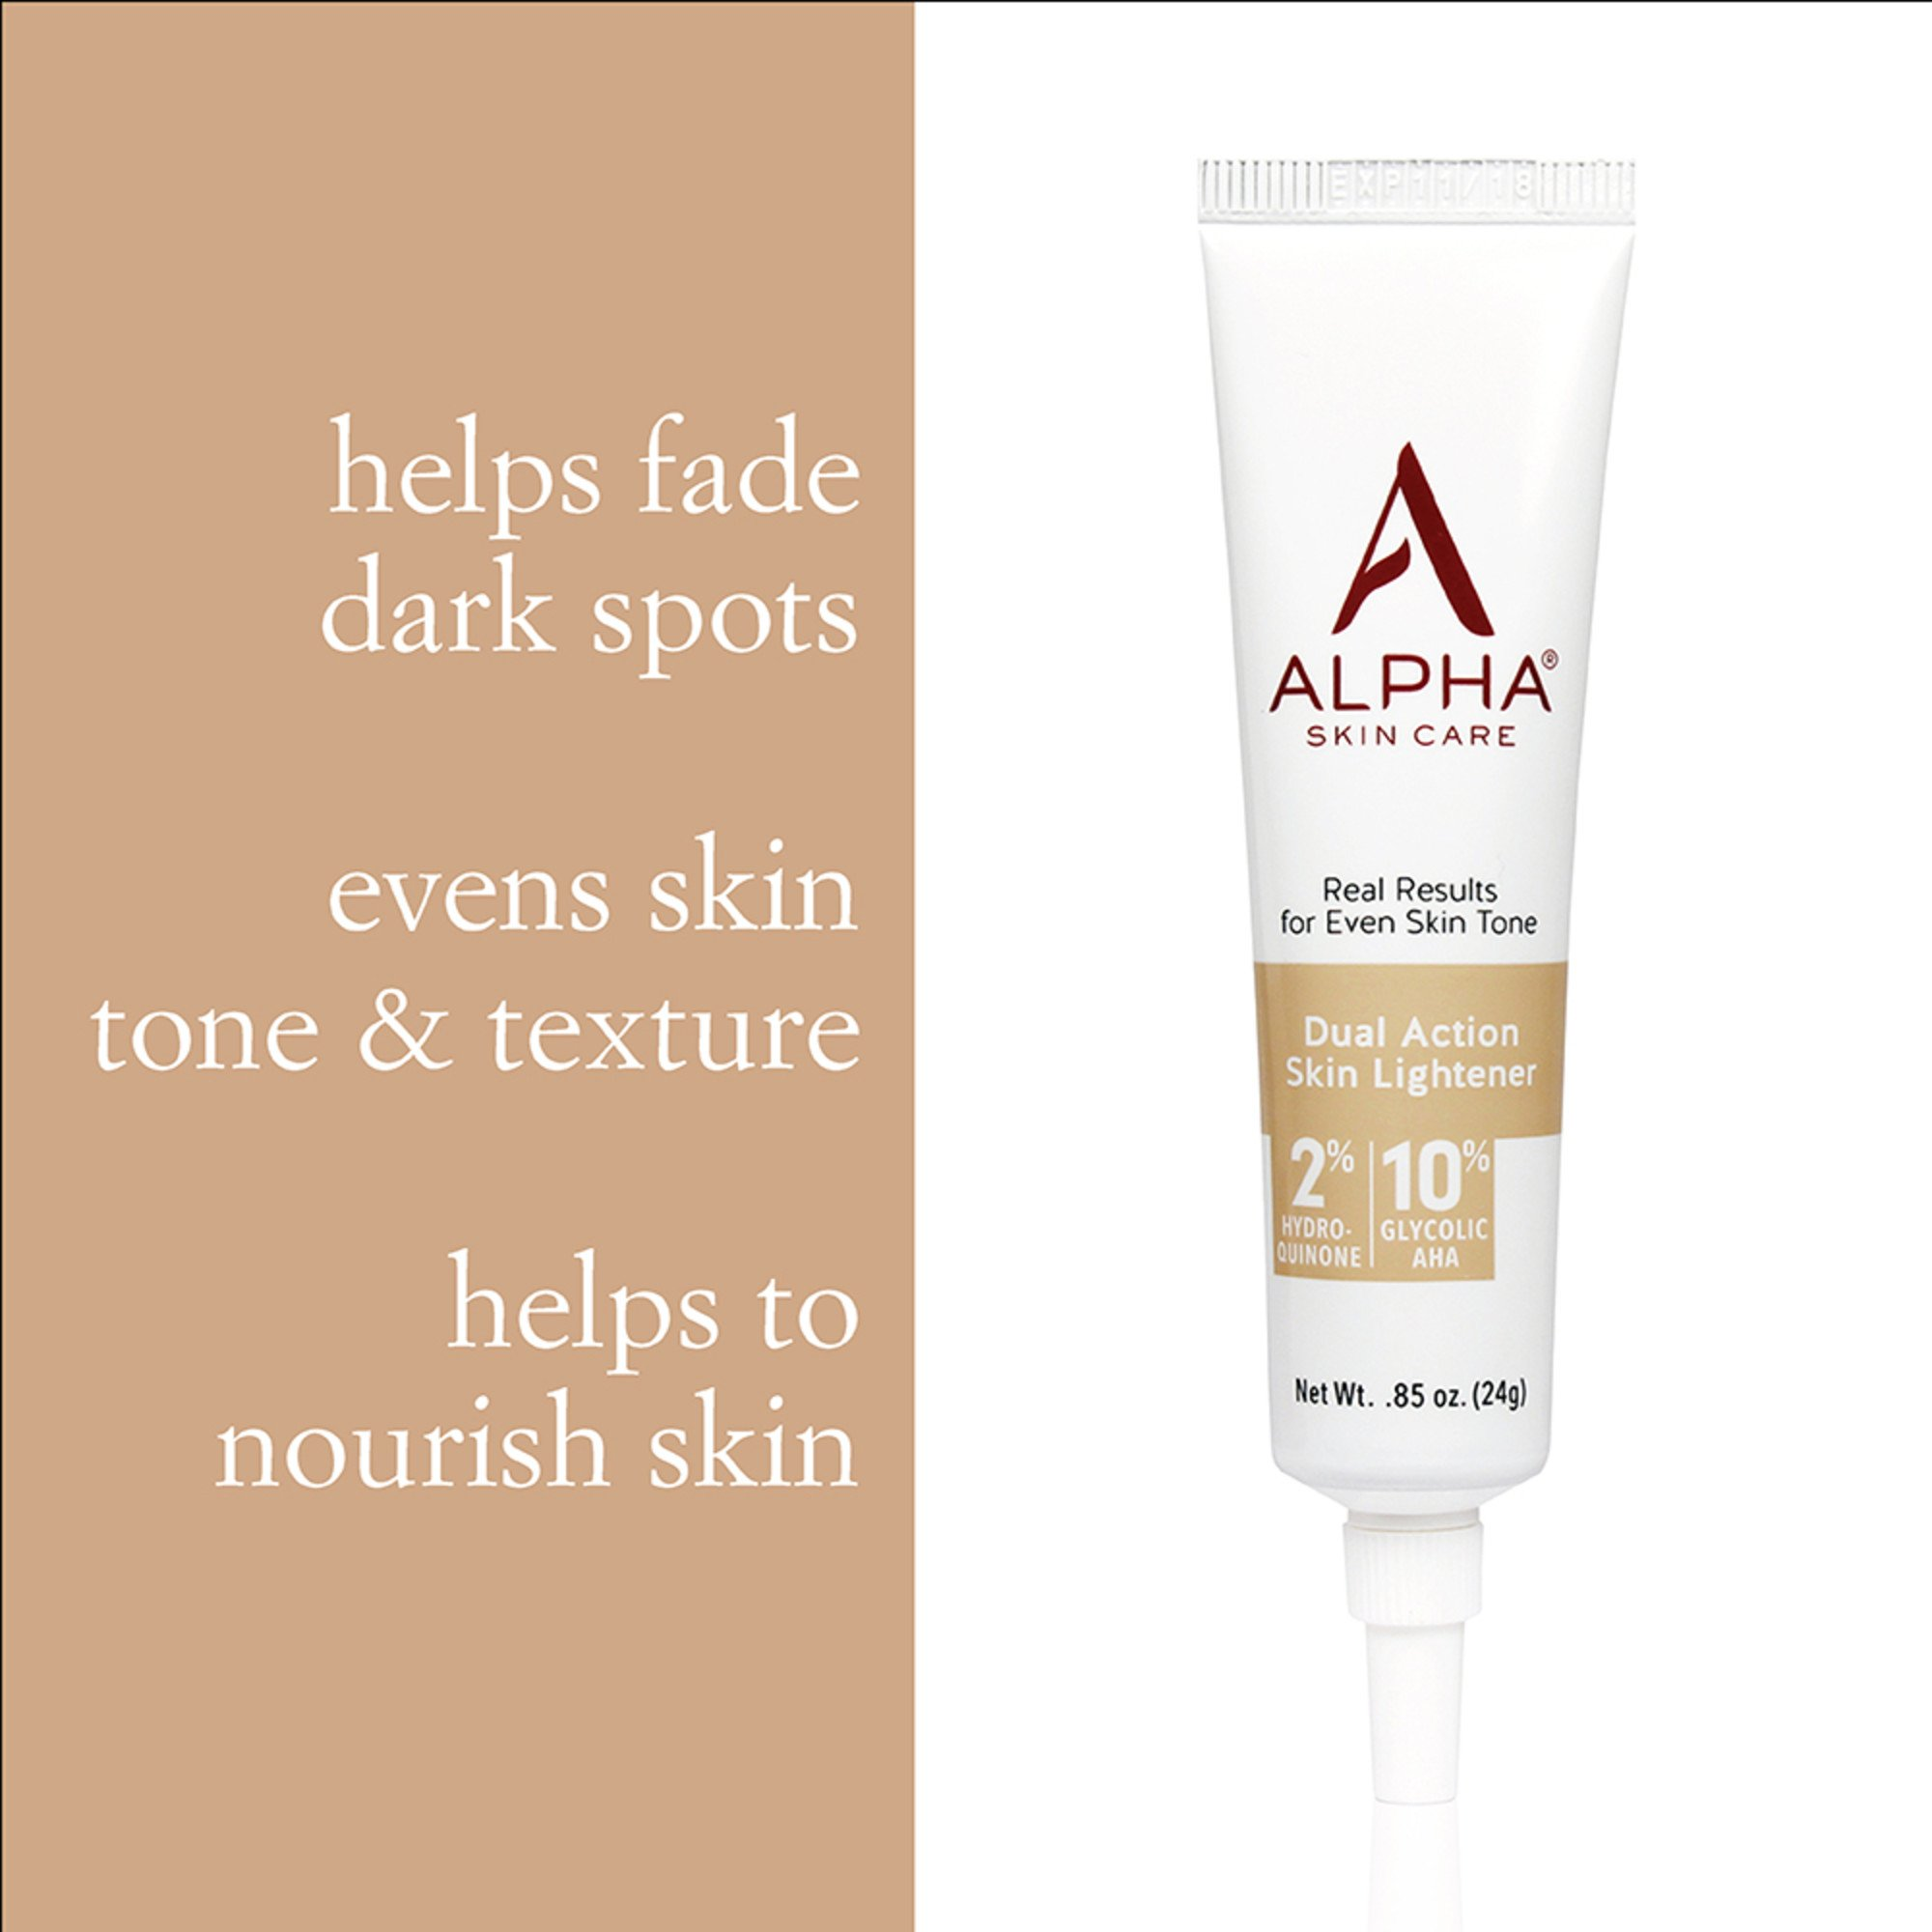 Alpha Skin Care - Dual Action Skin Lightener, 2% Hydroquinone, 10% Gycolic AHA, Real Results for Even Skin Tone| Paraben-Free| 0.85-Ounce by Alpha Skin Care (Image #3)